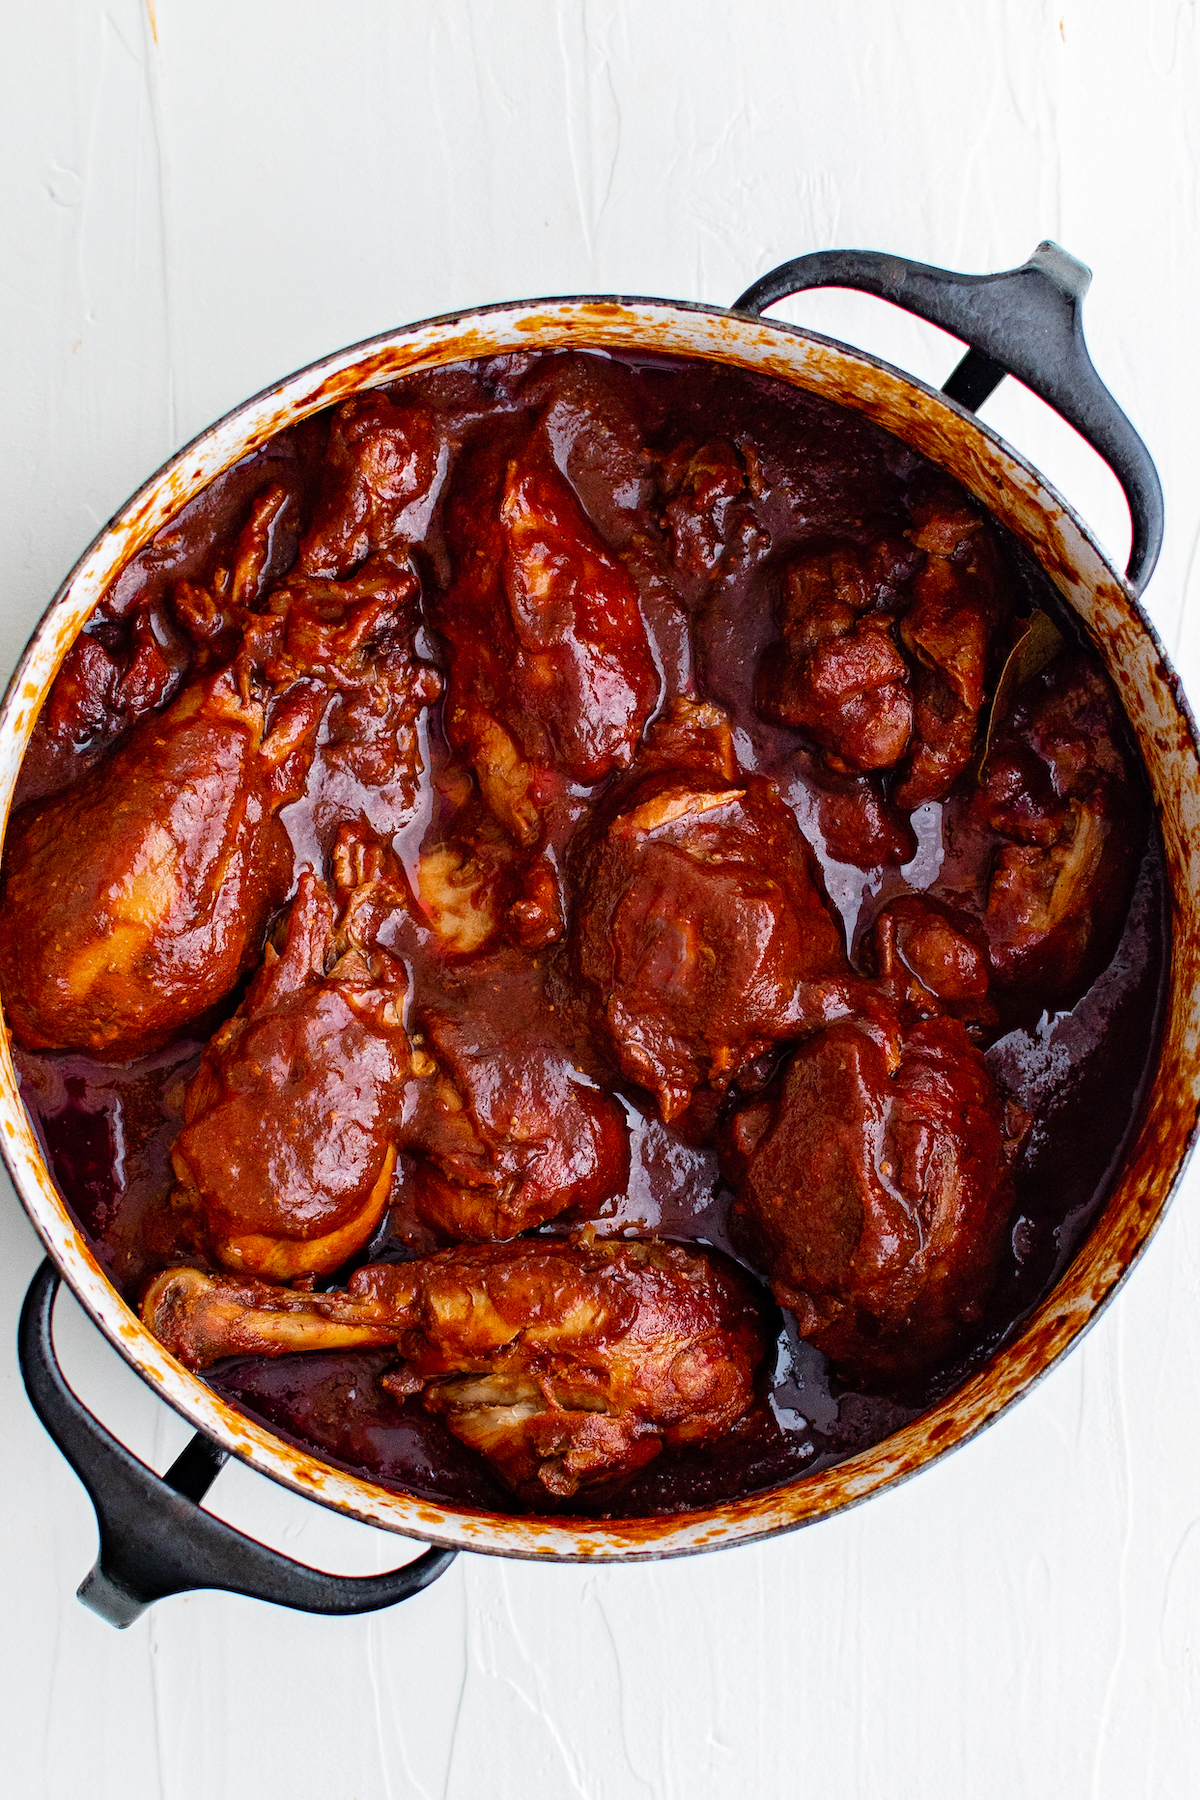 Chicken cooked in adobo sauce.